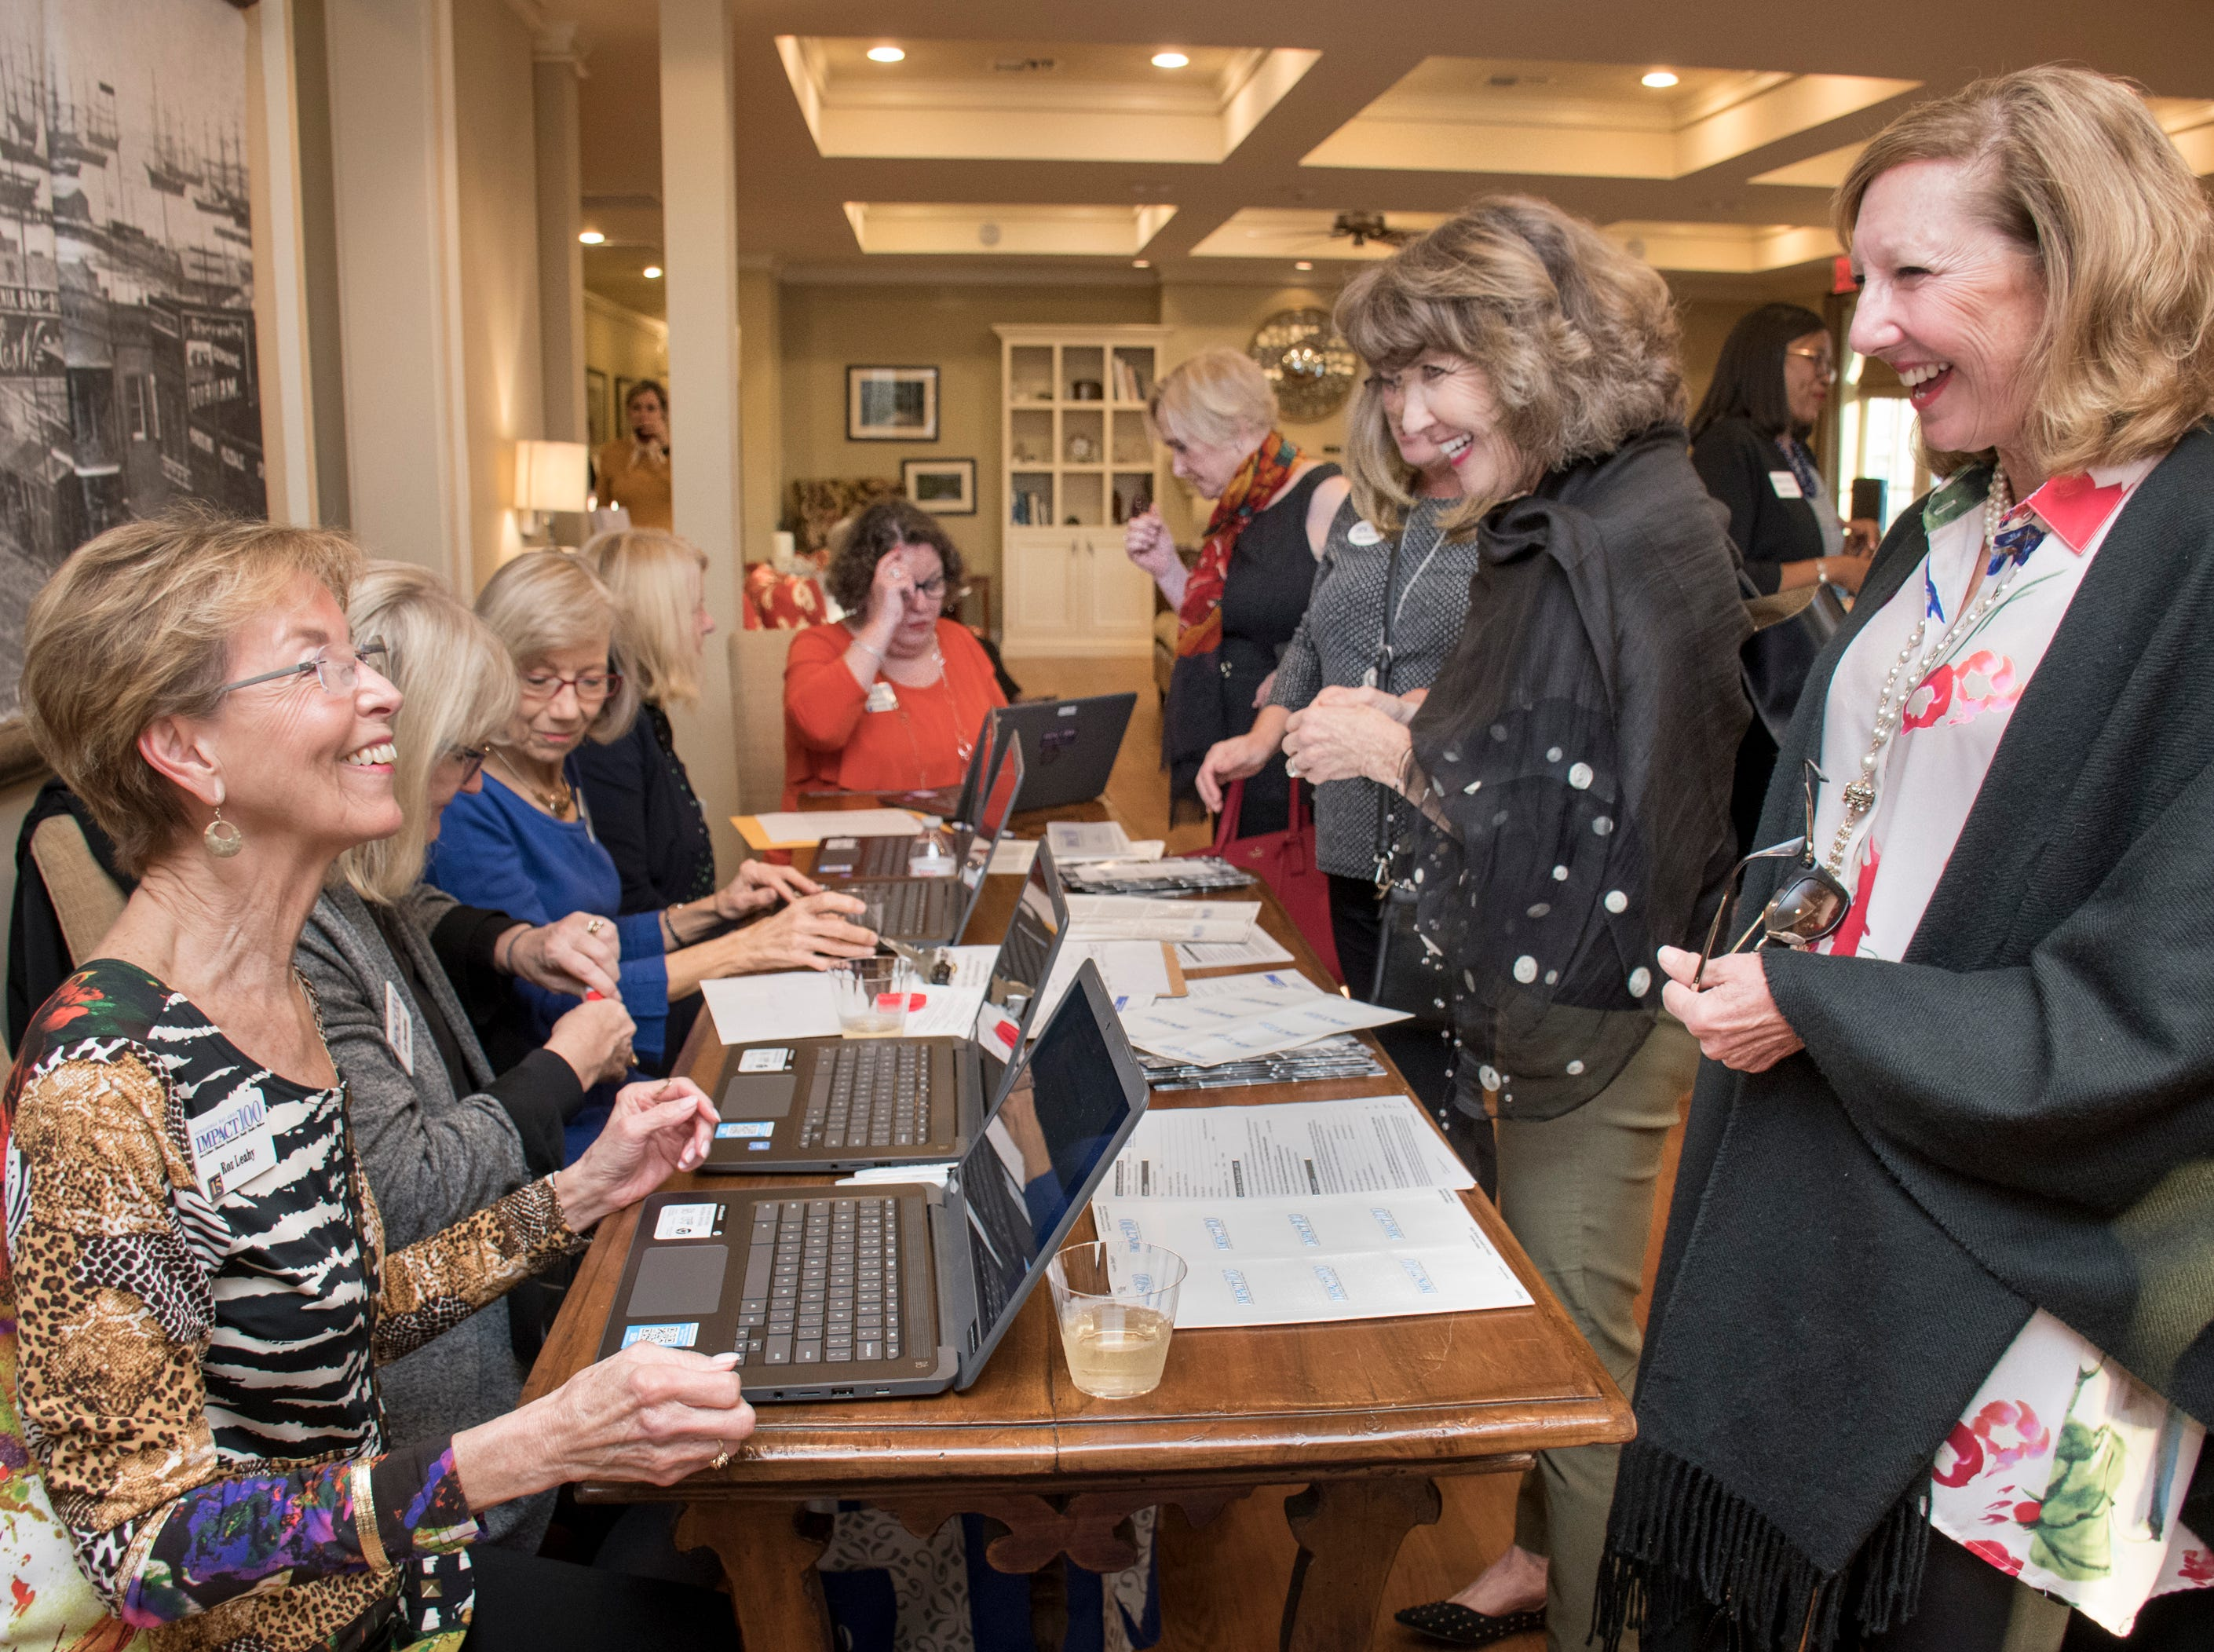 Roz Leahy, left, checks in Suzanne Manziek during the Impact 100 Pensacola Bay Area meeting at the Lee House in Pensacola on Tuesday, January 8, 2019.